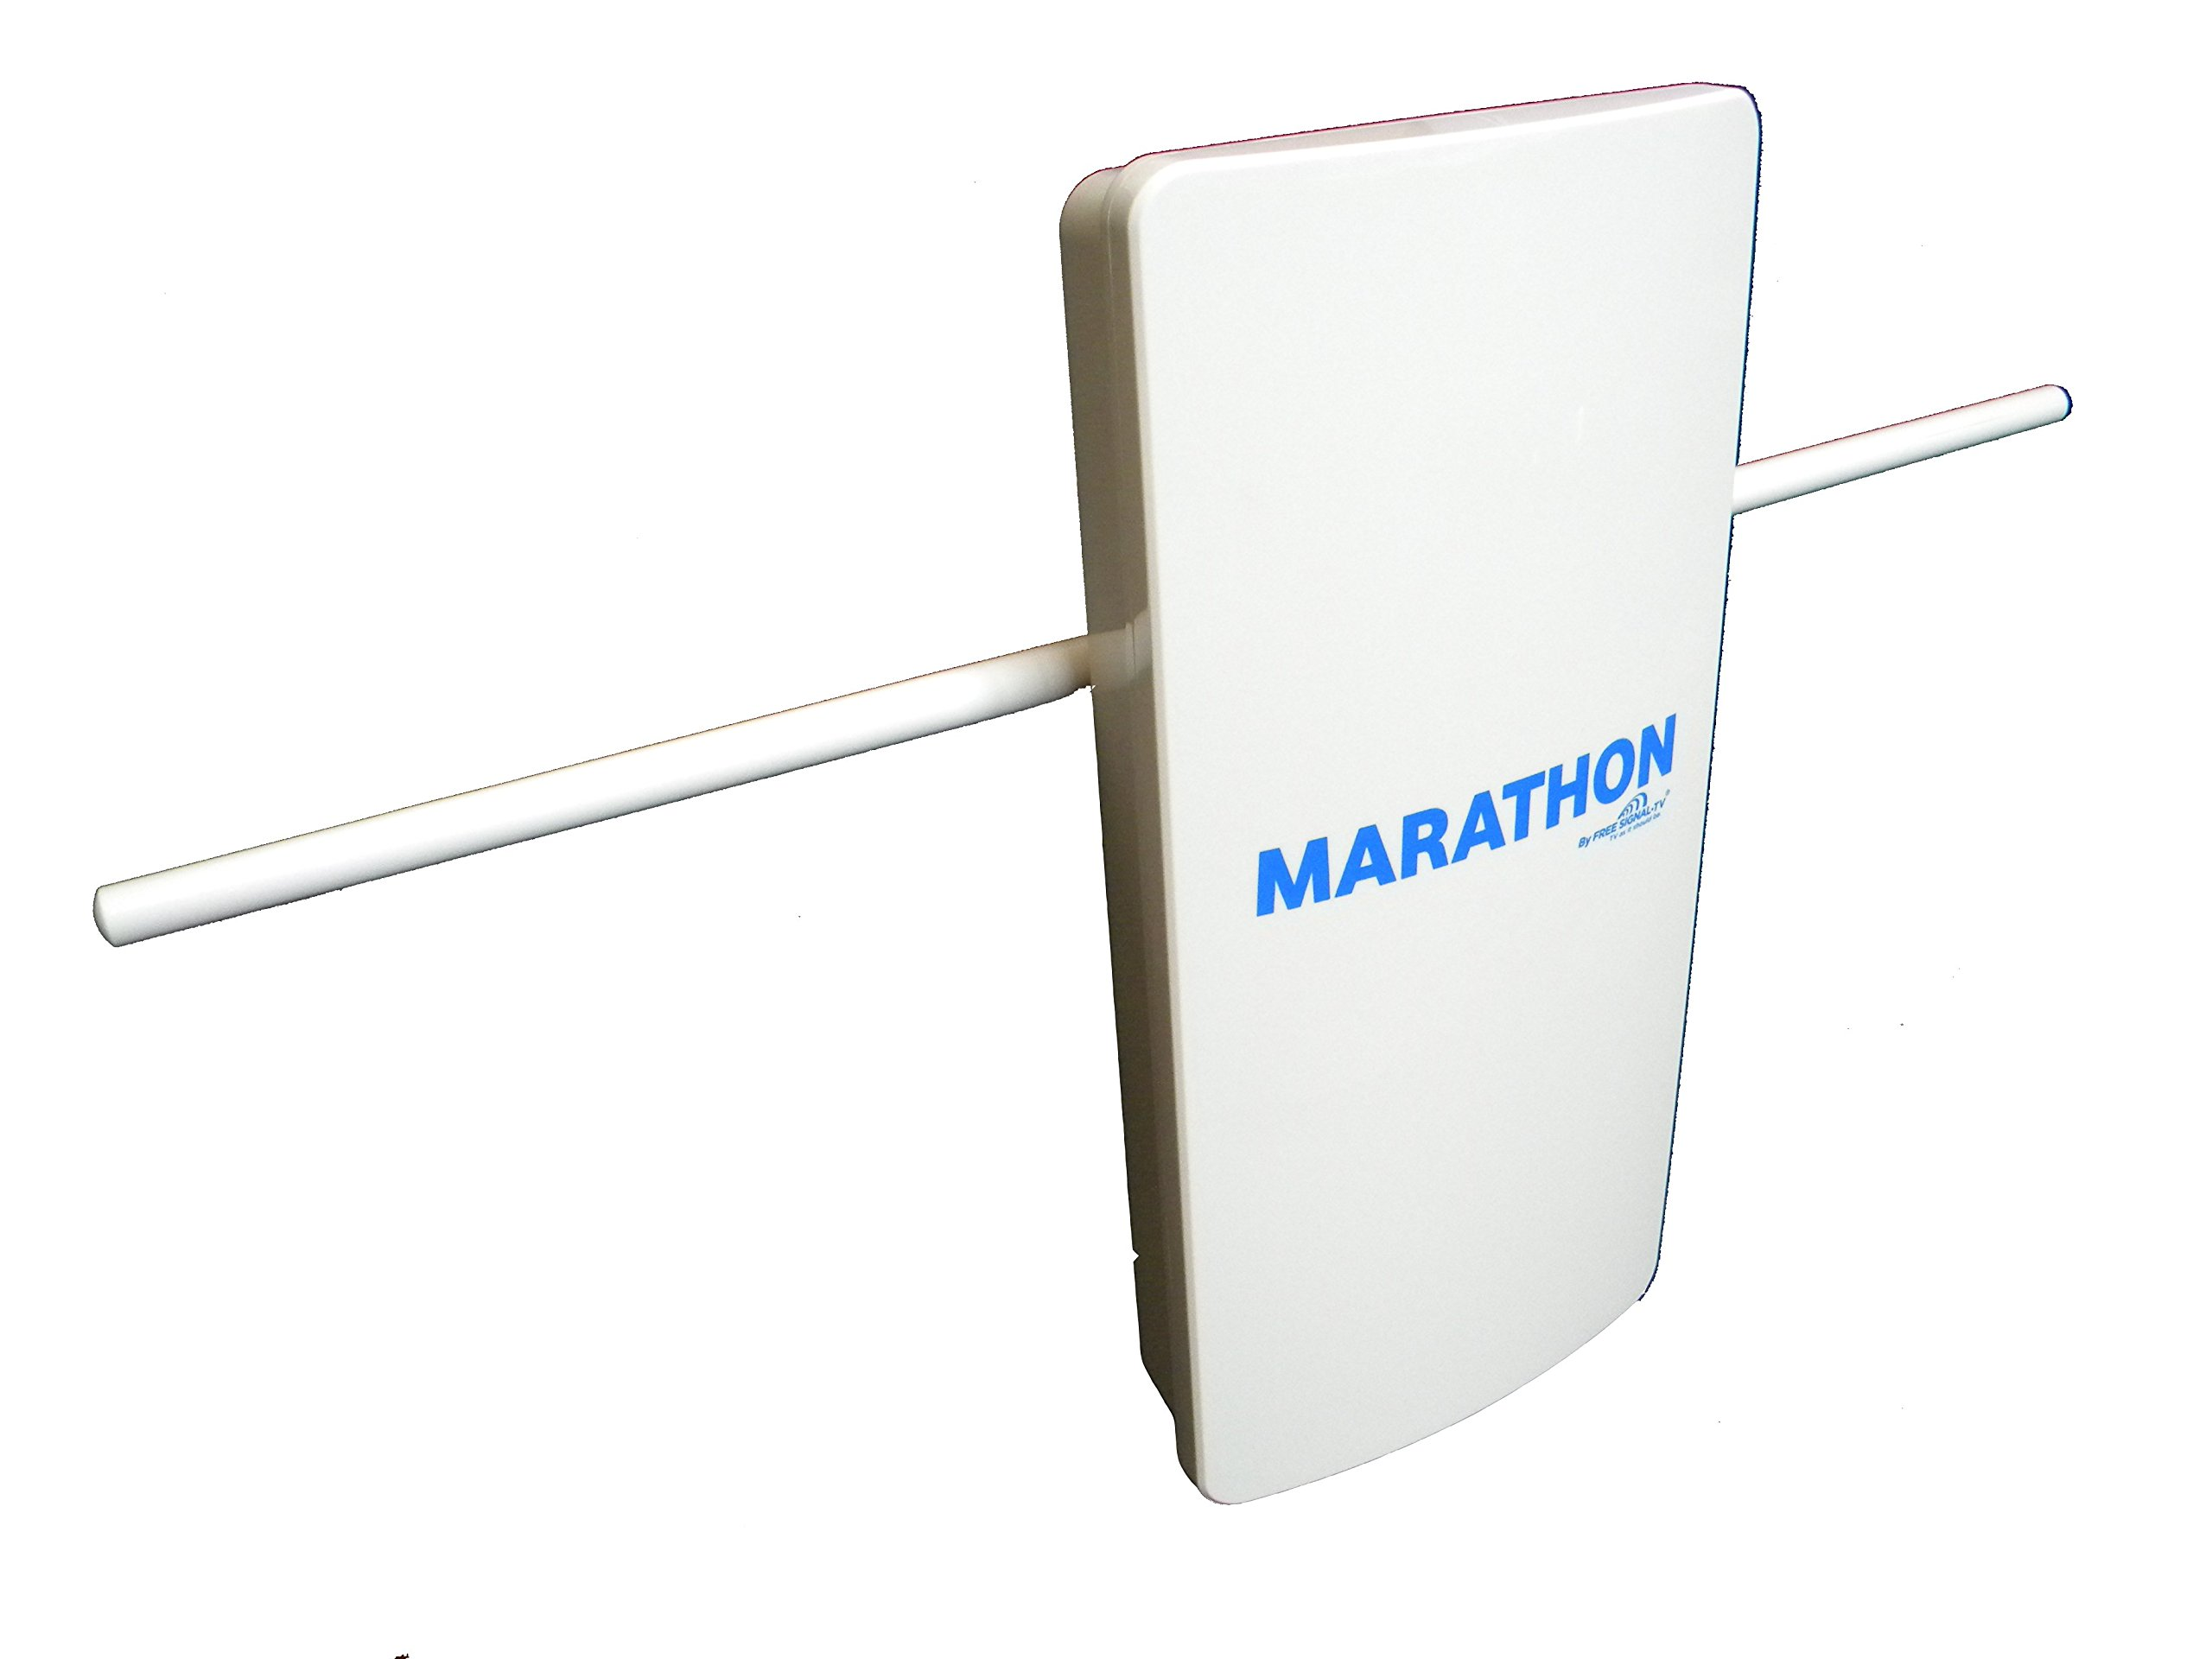 Marathon HDTV Long Distance Amplified Indoor / Outdoor Digital TV Antenna. Long Range High Definition UHF - VHF Reception and Top Rated Whole House Performance by Free Signal TV by Free Signal TV